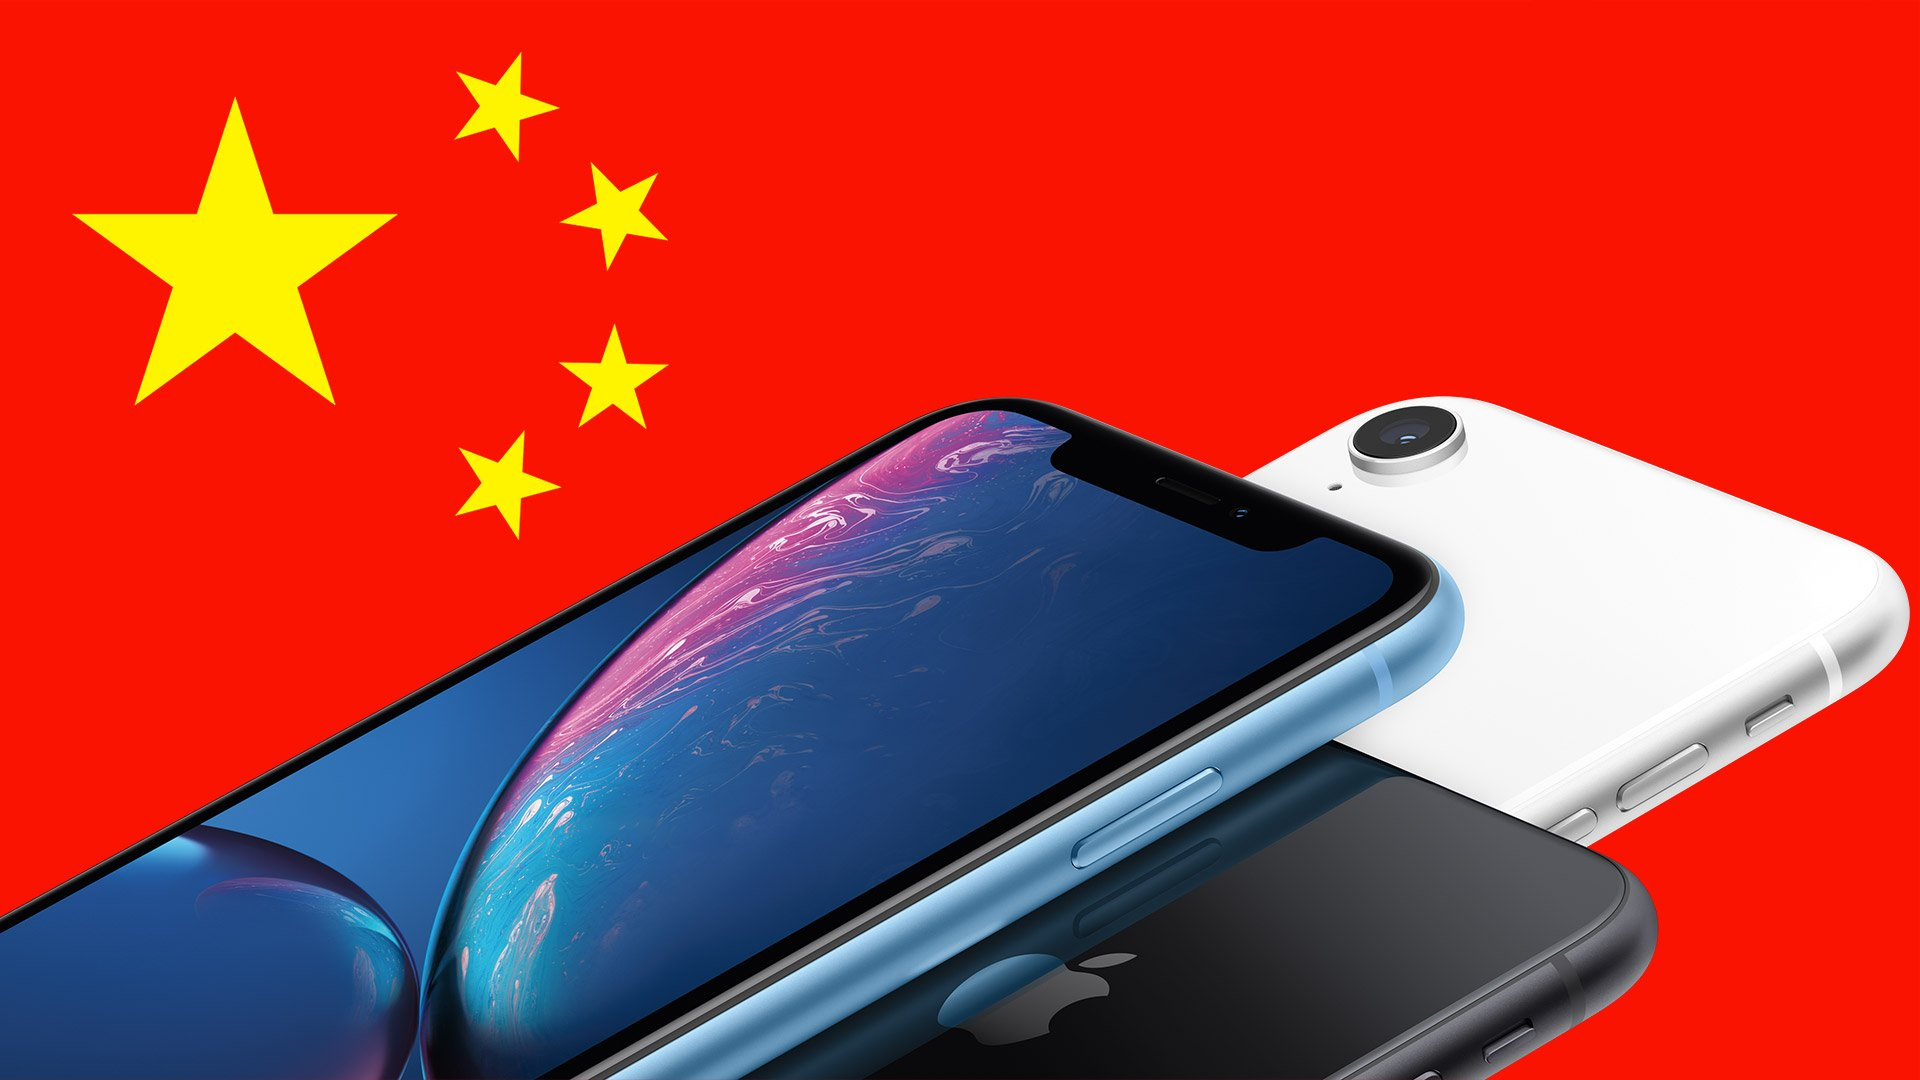 apple, qualcomm, apple vs qualcomm, apple china, iphone china